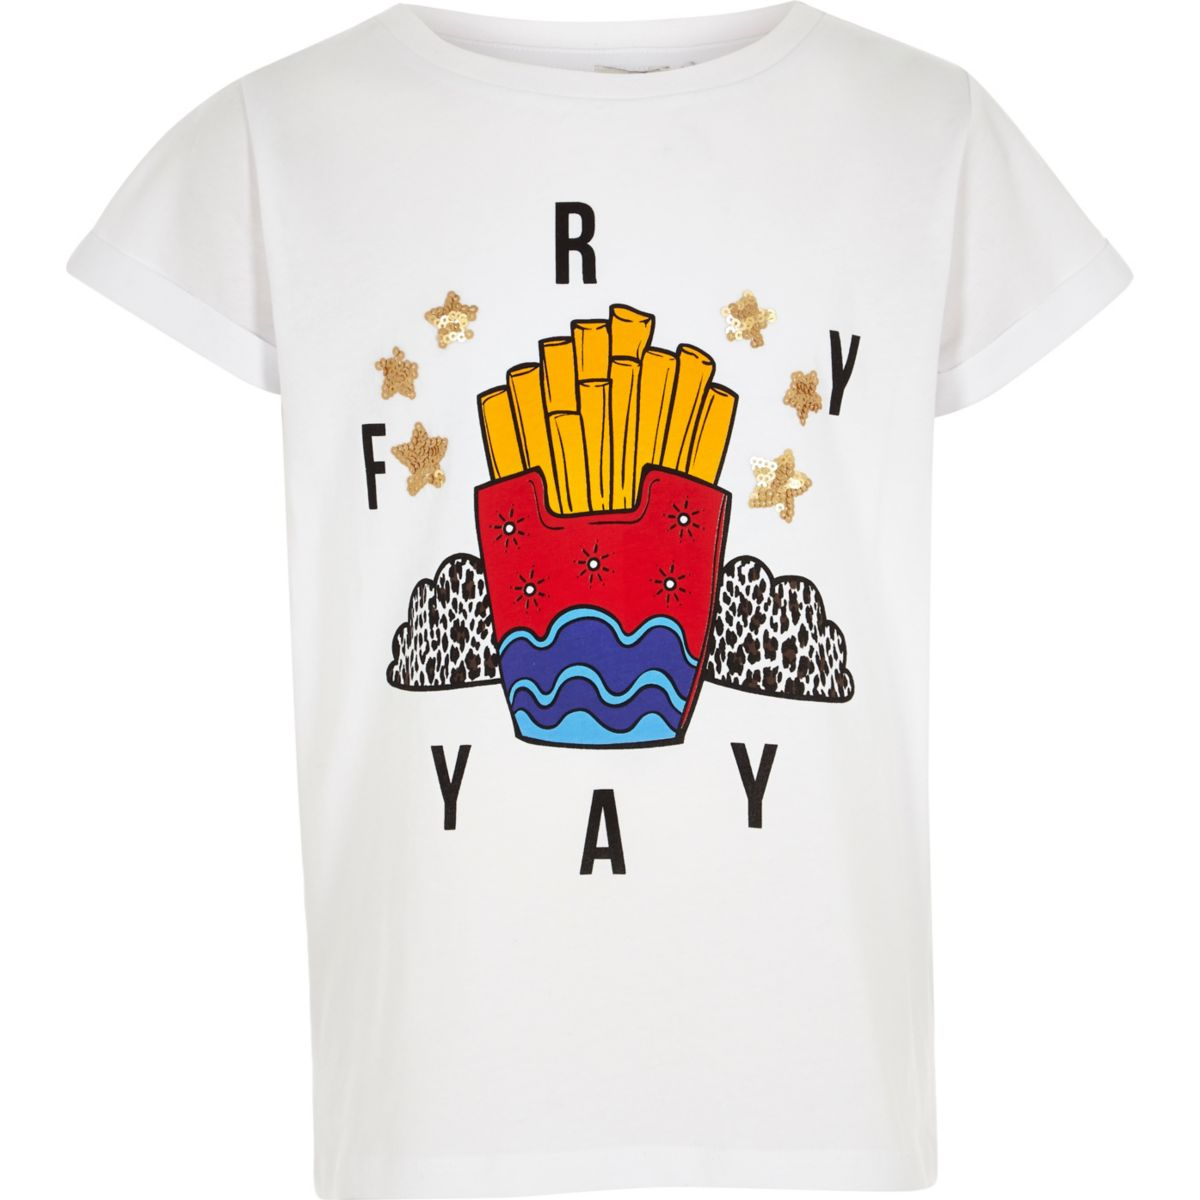 Girls white 'fry yay' print boyfriend T-shirt